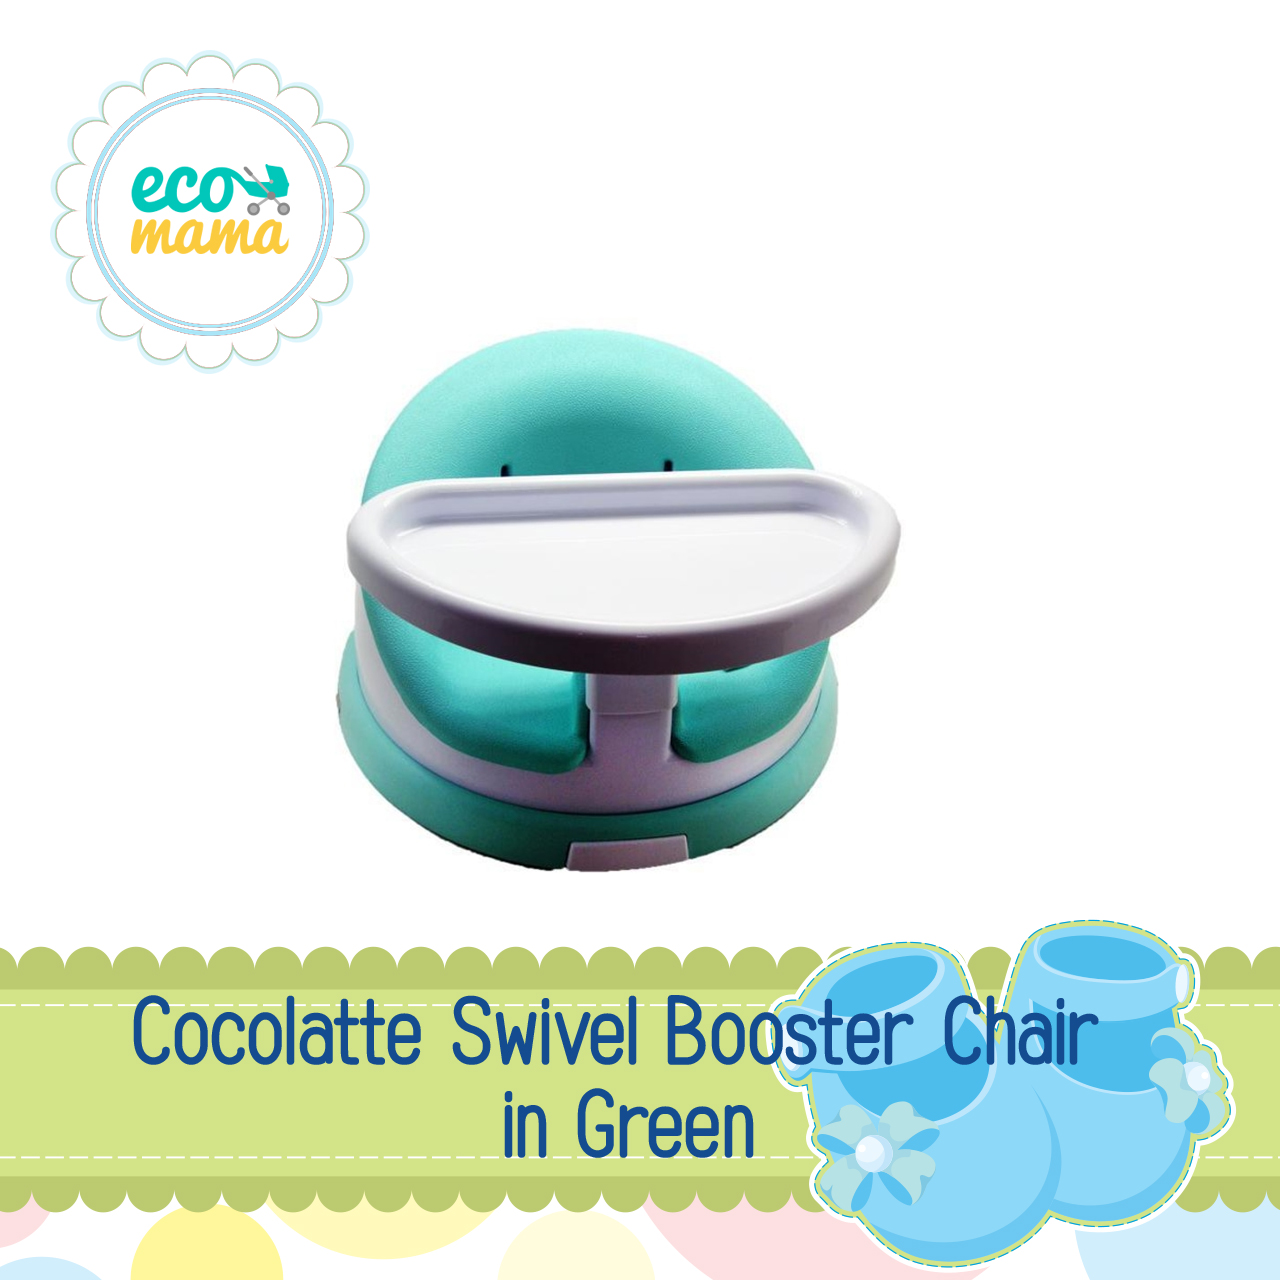 Cocolatte Swivel Booster Chair in Green